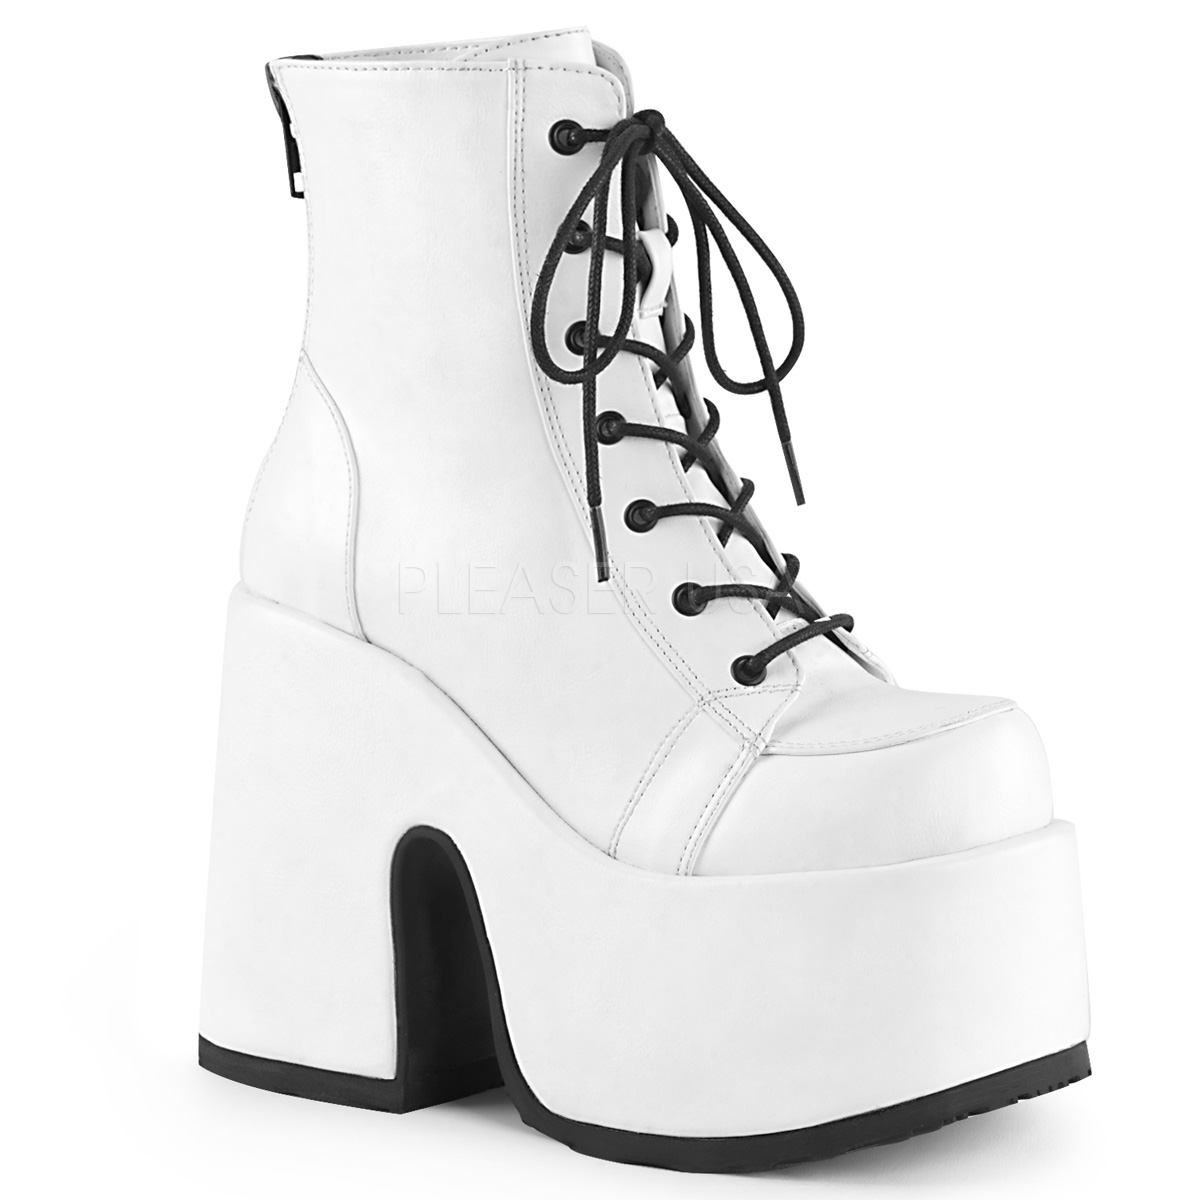 48408b5097c1 White-Leatherette-13-cm-DEMONIA-CAMEL-203-goth-ankle-boots-11579 0.jpg